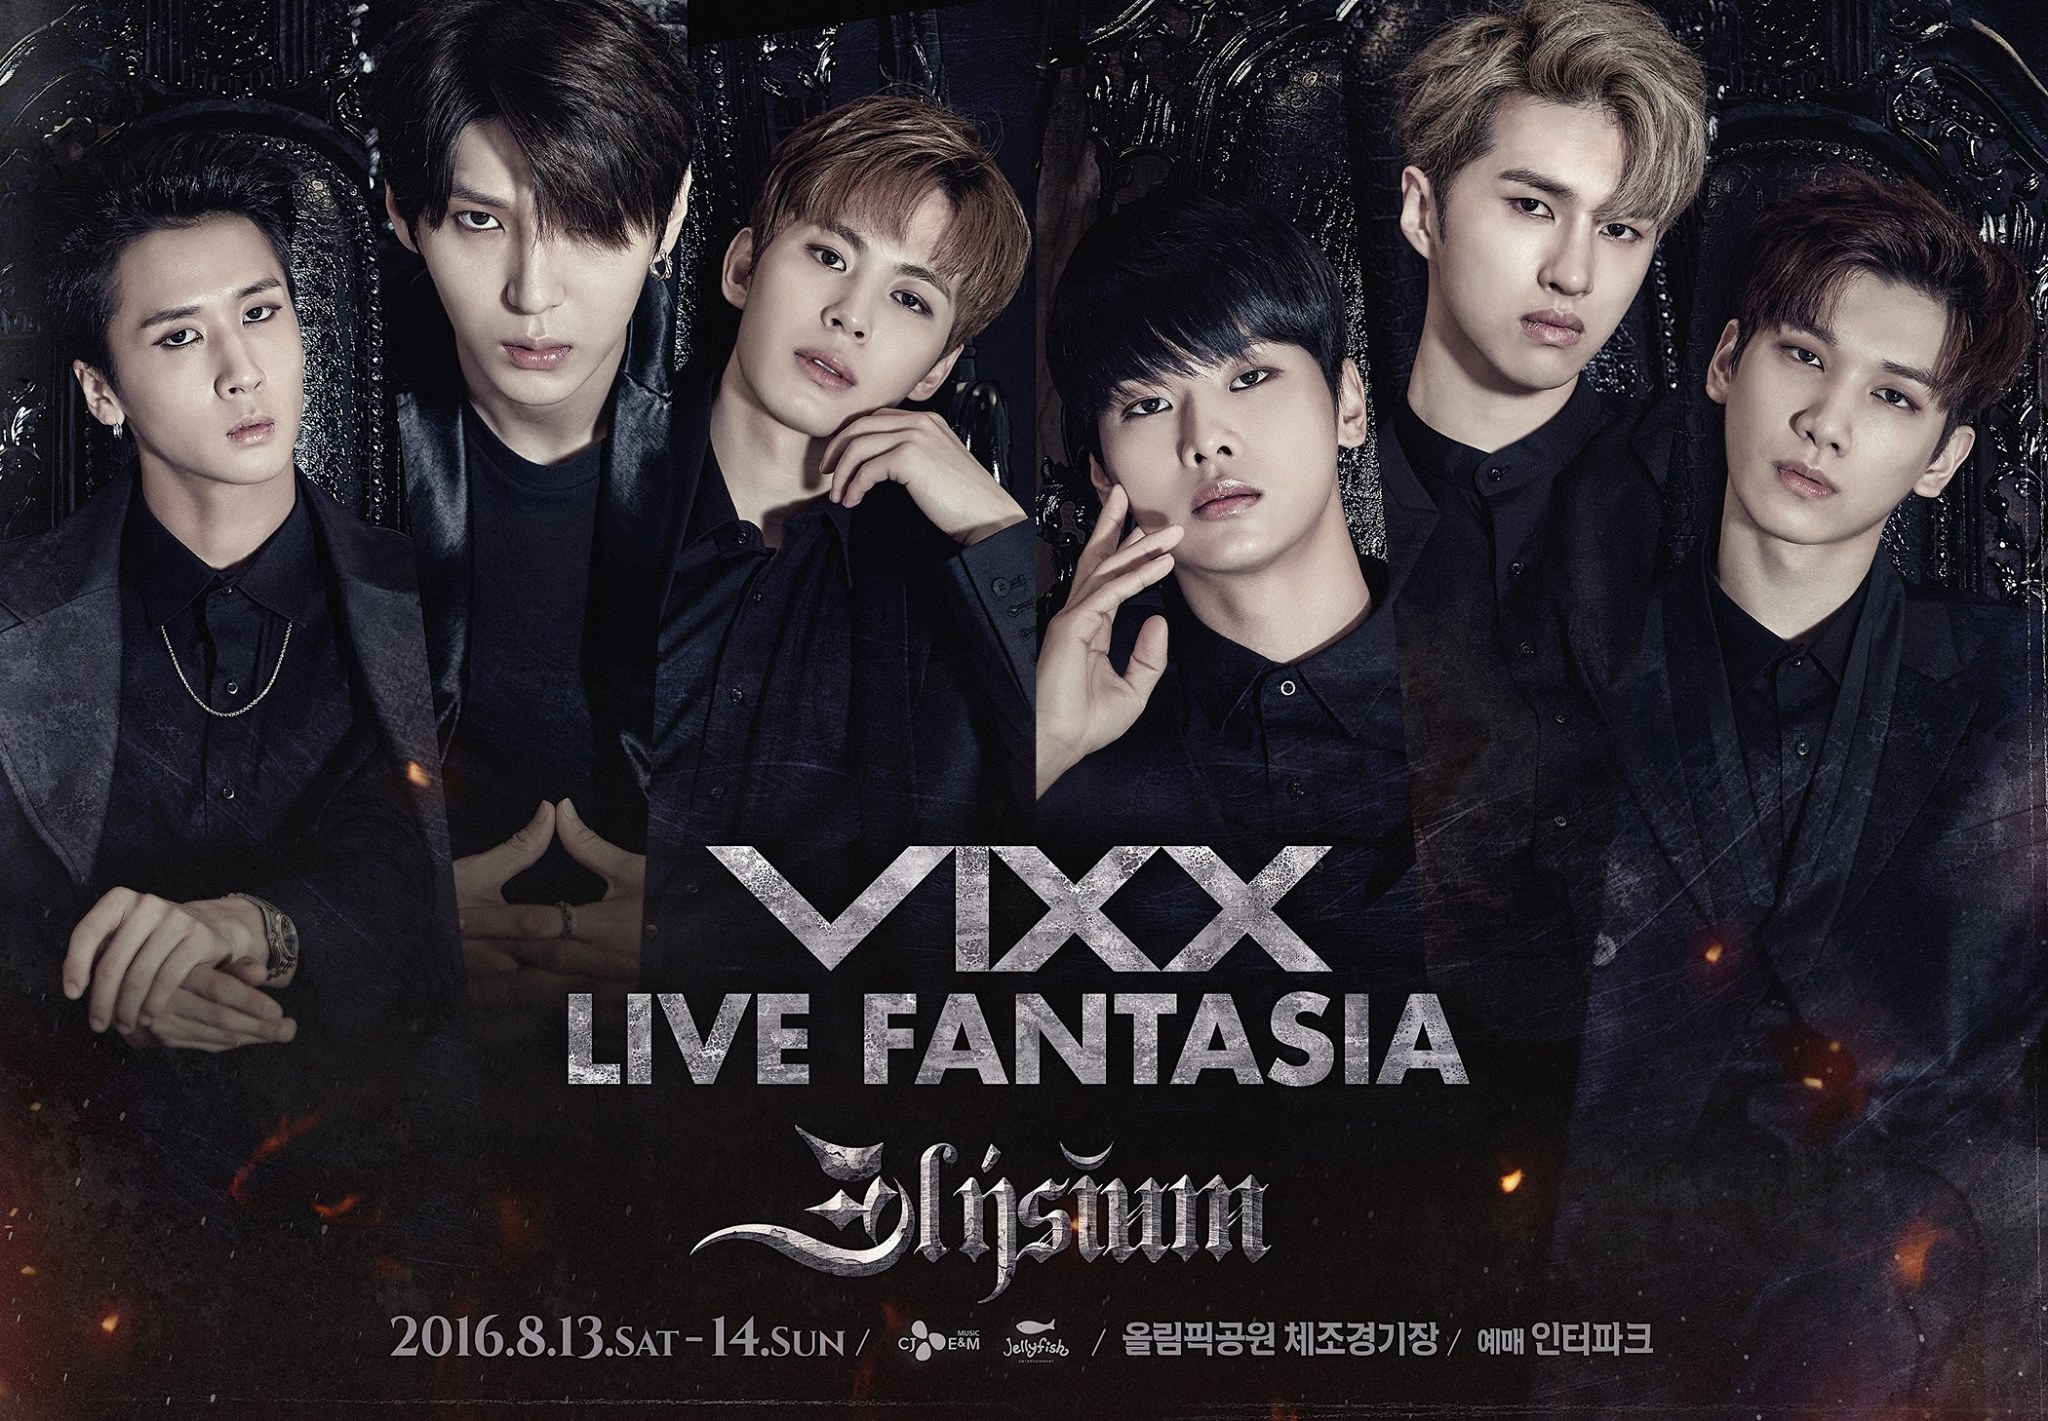 VIXX Members Take The Throne In New Batch Of Concert Posters